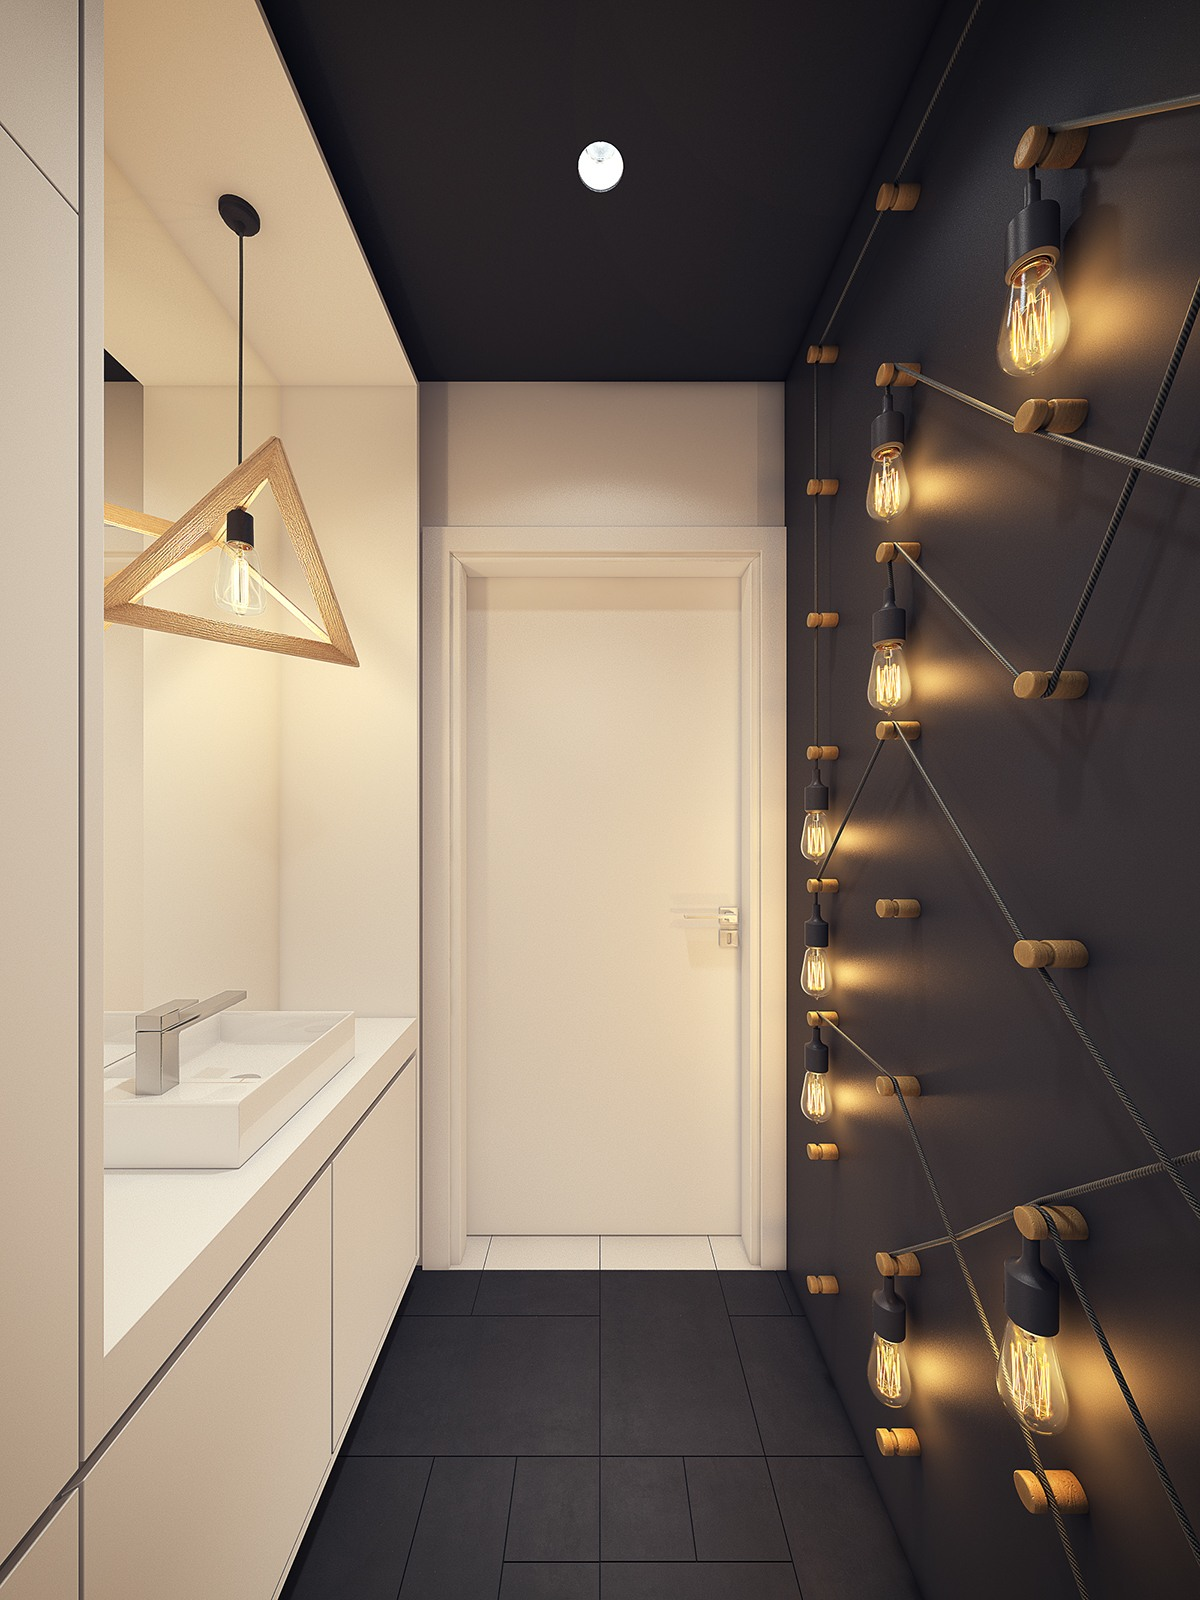 Amazing Bathroom Light Ideas - A modern scandinavian inspired apartment with ingenius features